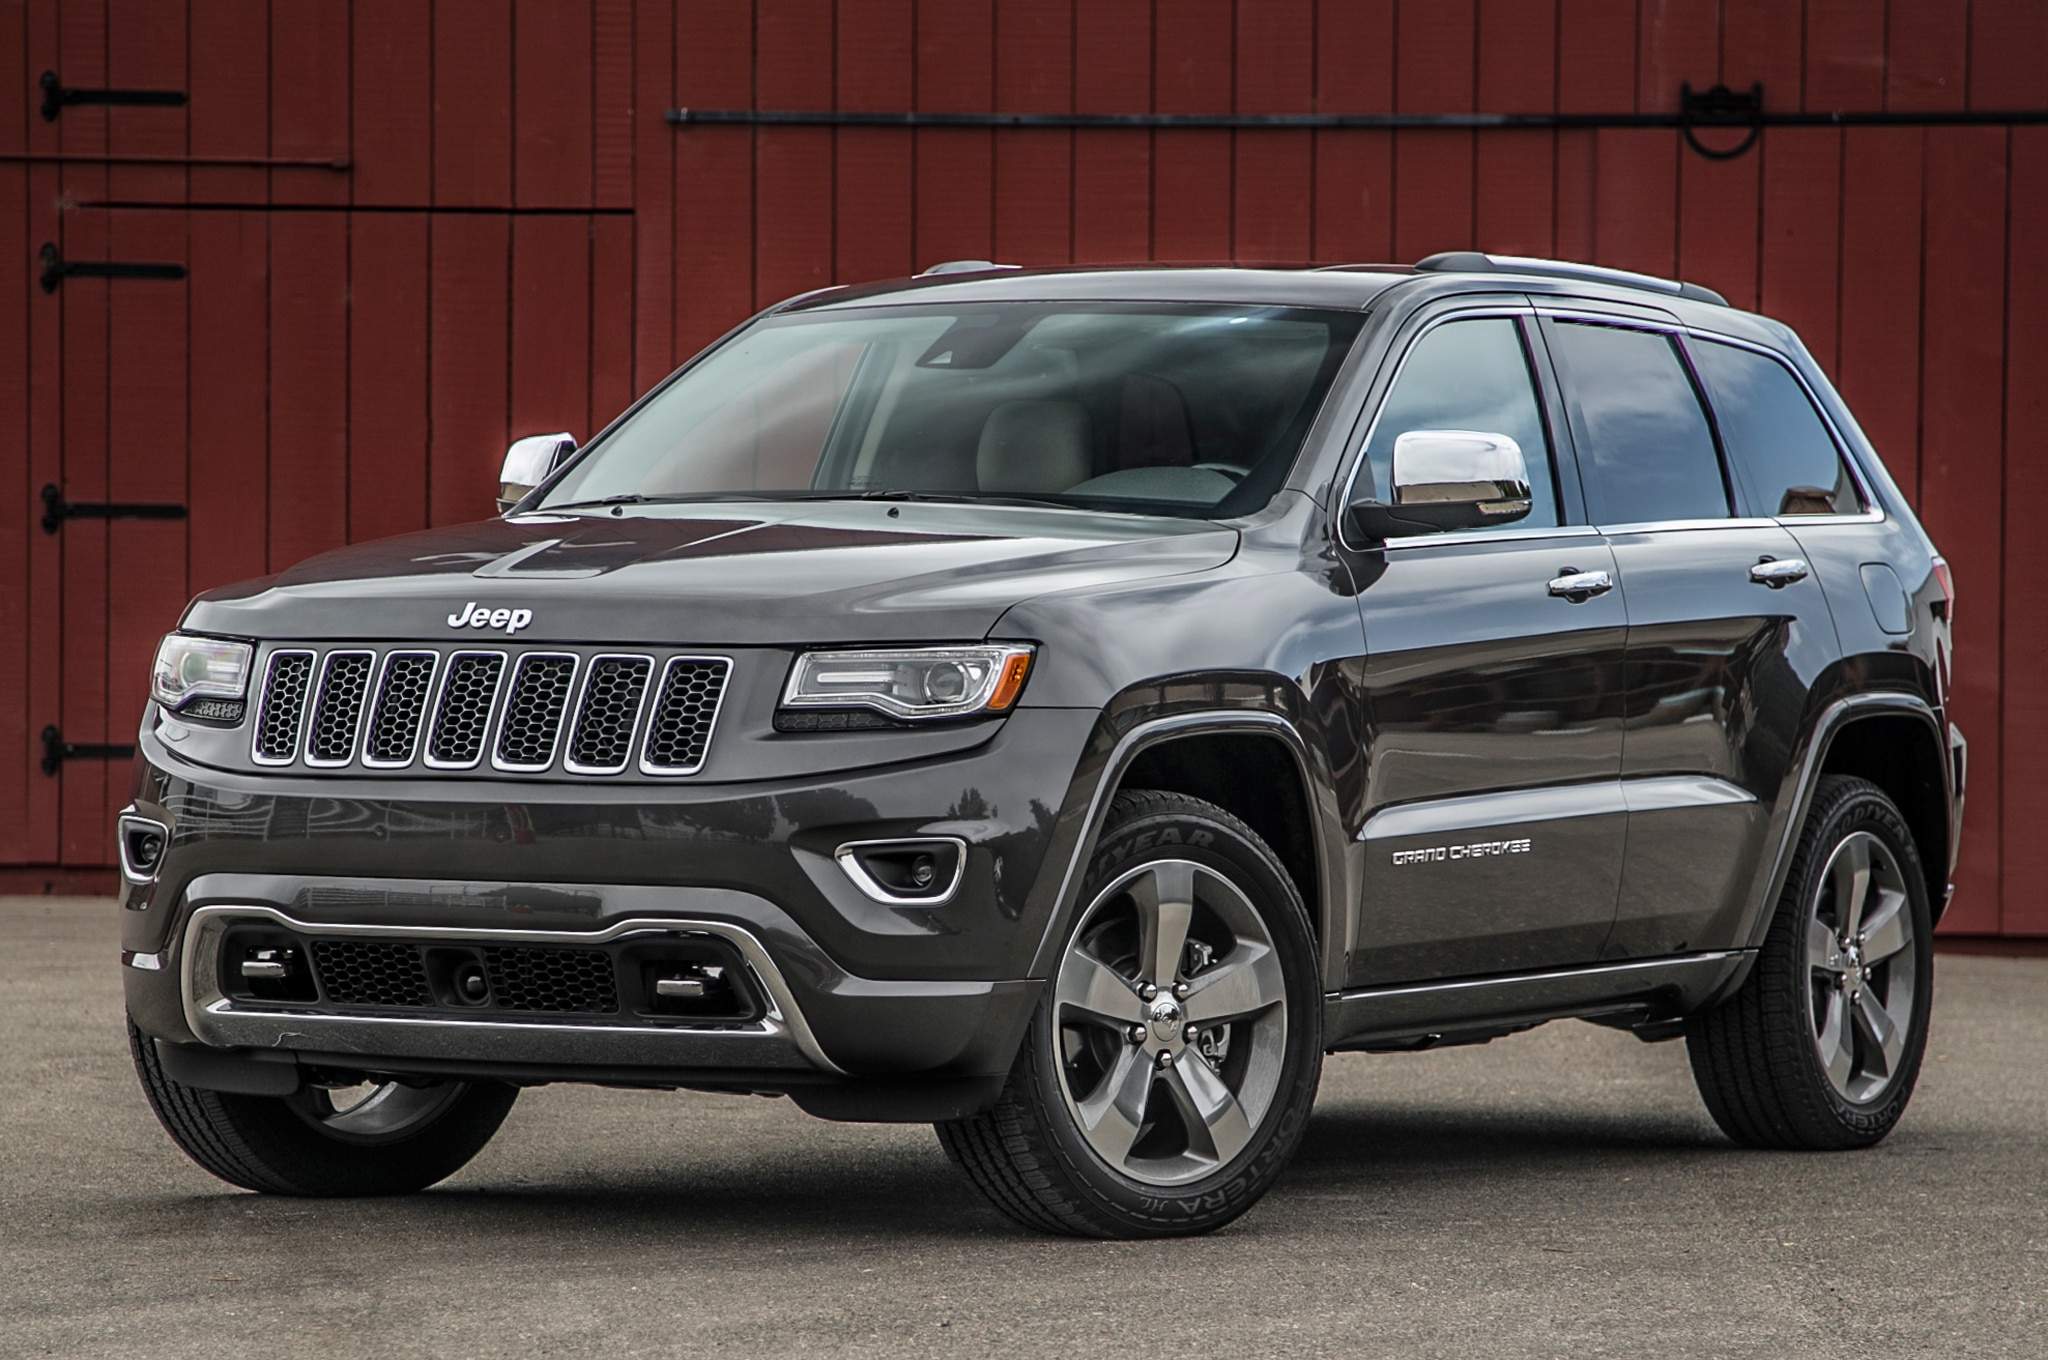 novo jeep 2018. beautiful jeep 2014 jeep grand cherokee v8 overland in novo jeep 2018 e